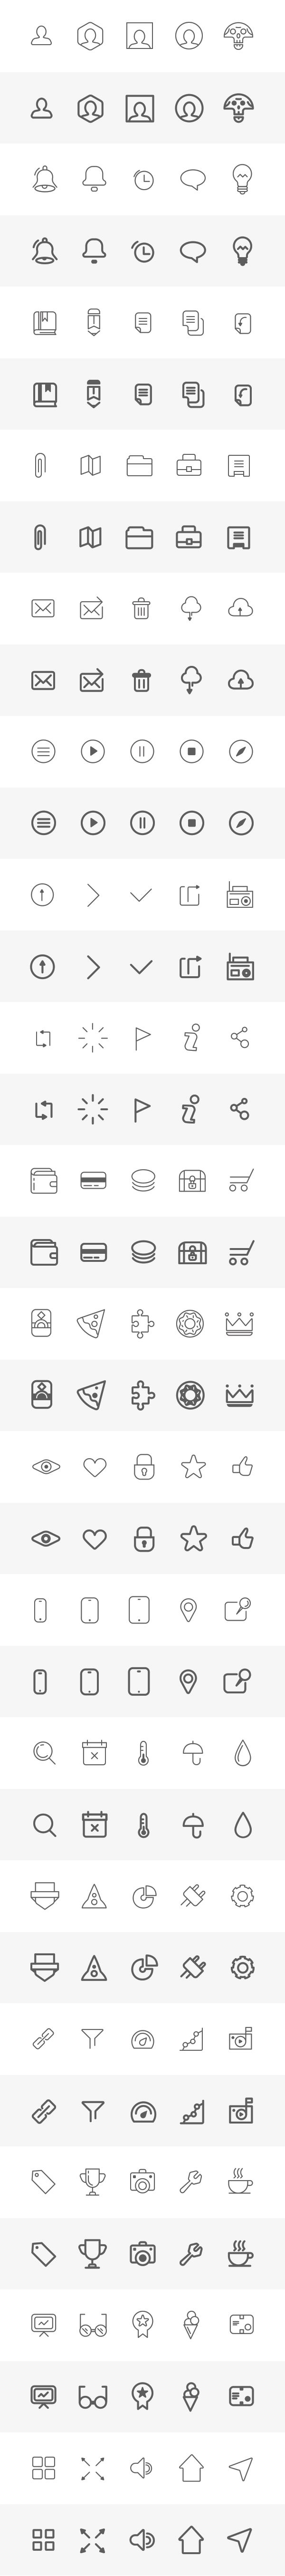 Free Wireframe Icons by s-pov spovv, via Behance